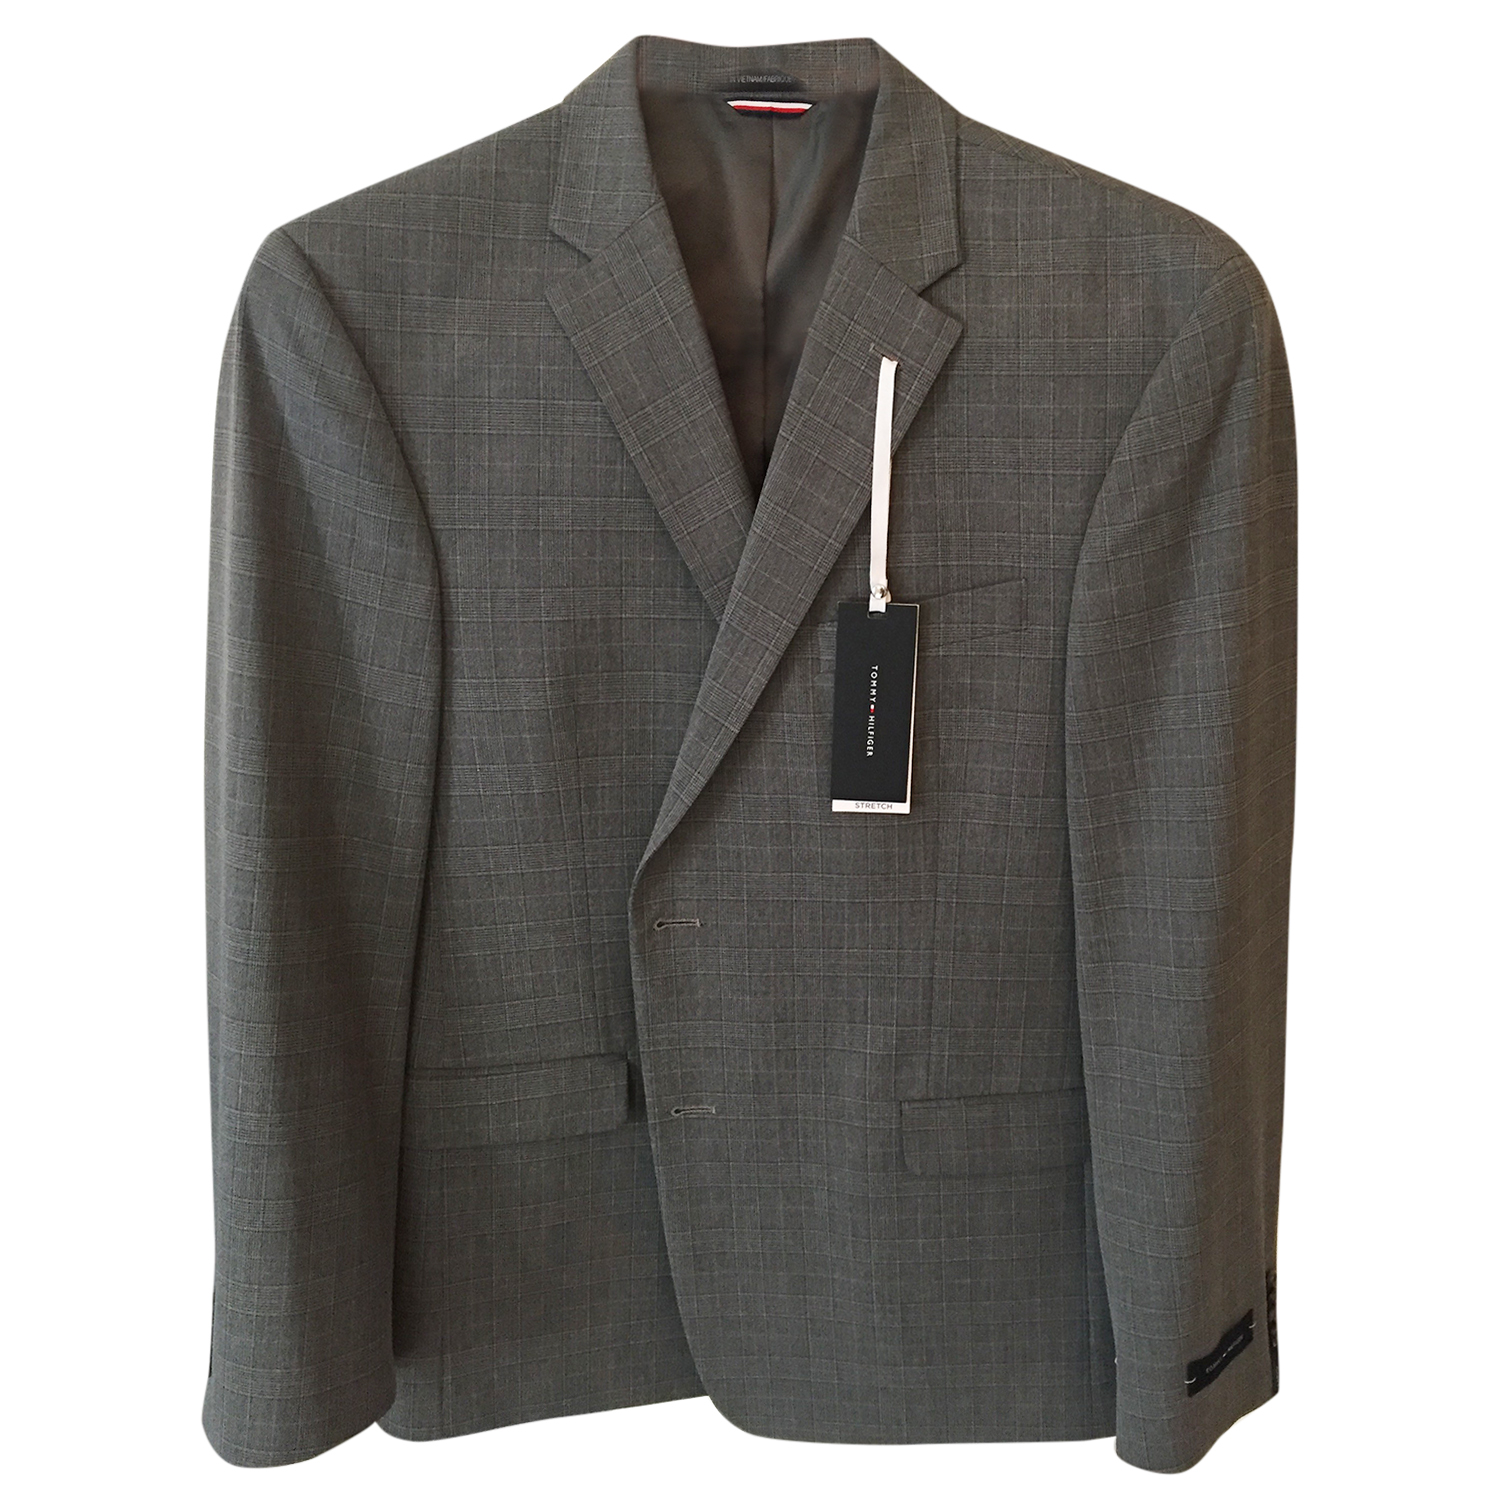 Tommy Hilfiger Men's suit